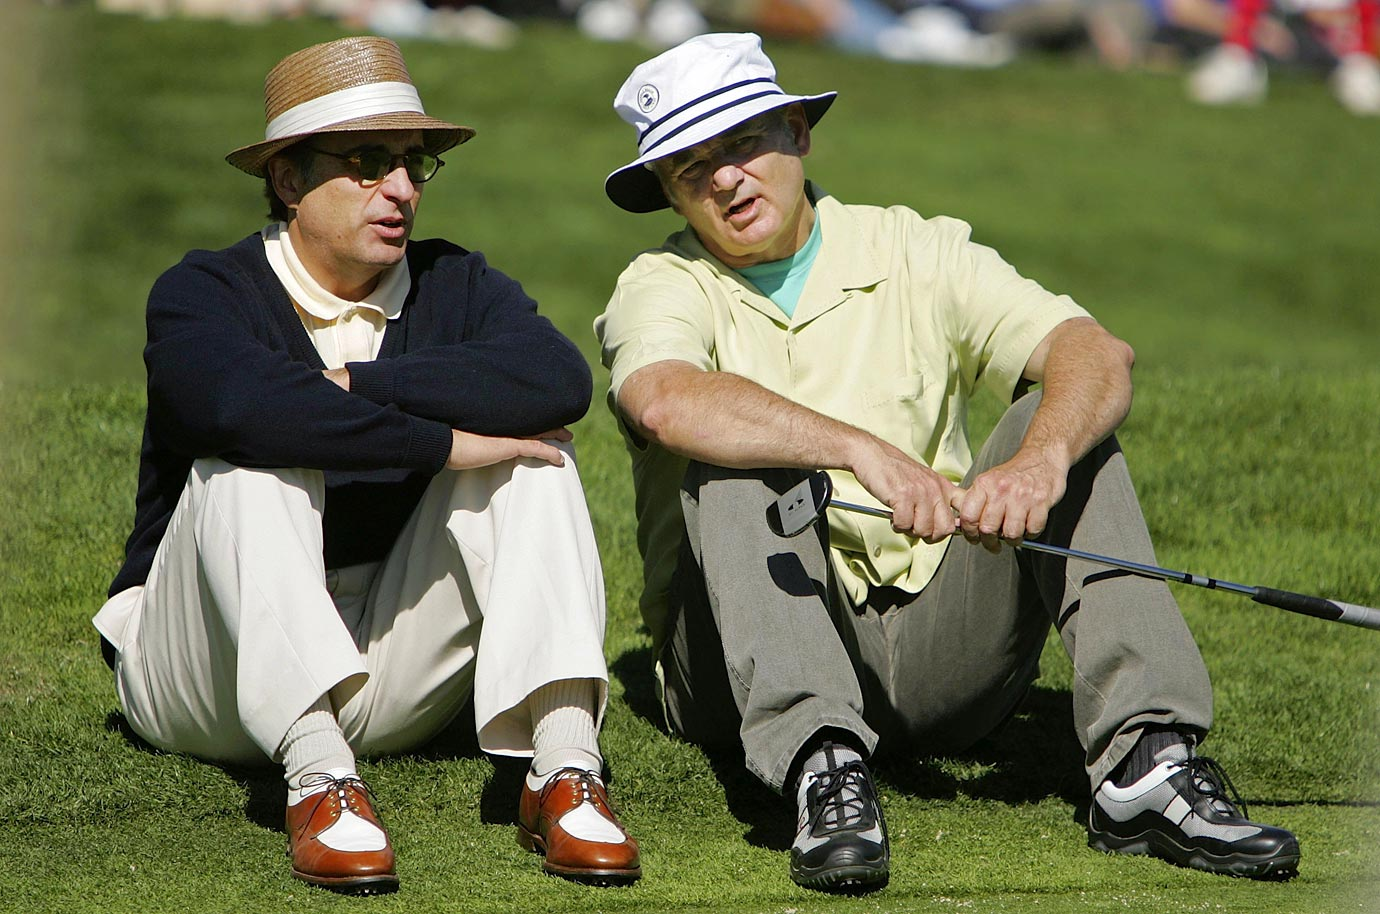 Bill Murray talks with Andy Garcia during the 3M Celebrity Golf Challenge on Feb. 8, 2006 in Pebble Beach, Calif.